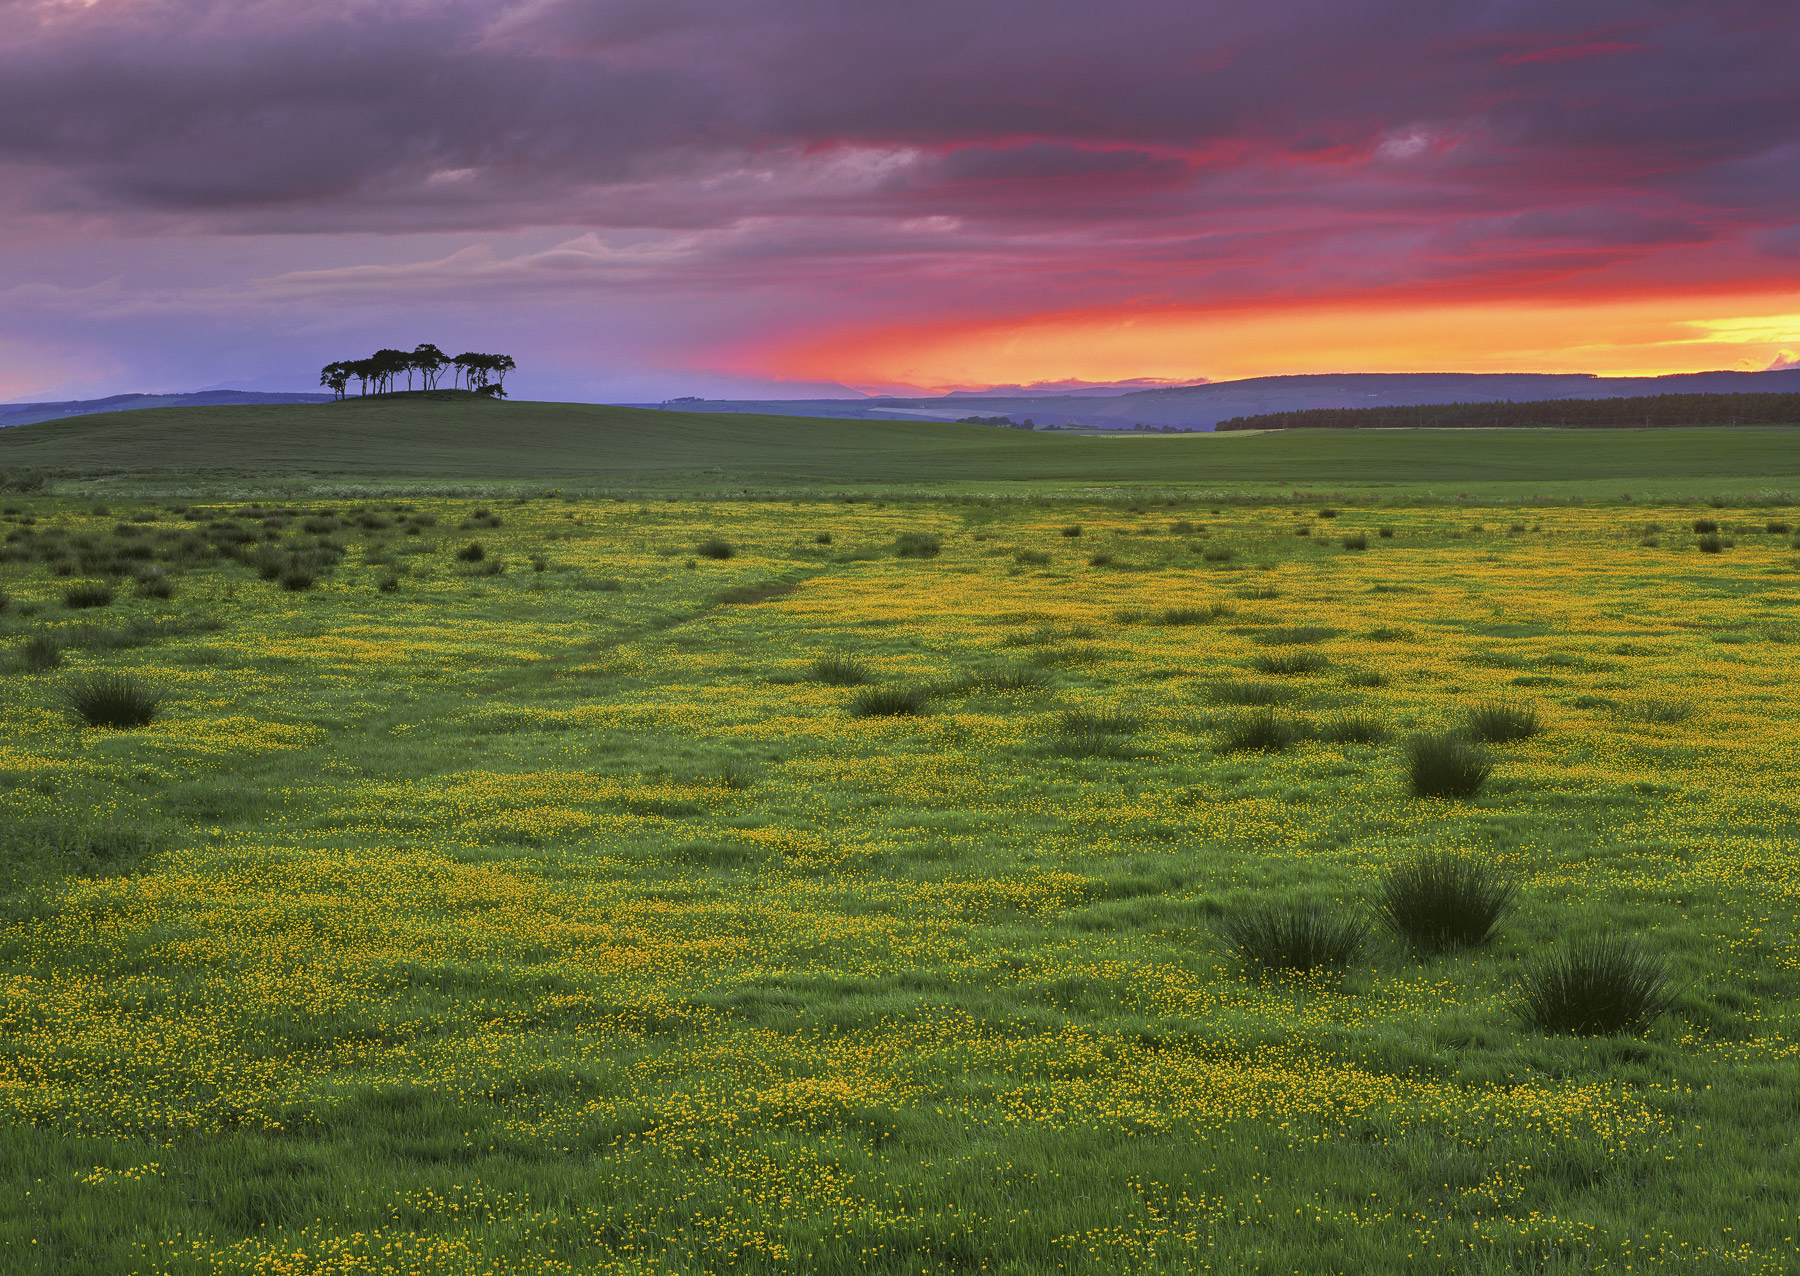 A billion blazing buttercups, golden and backlit by the fading light of a glowing crimson and orange sky a few minutes after...